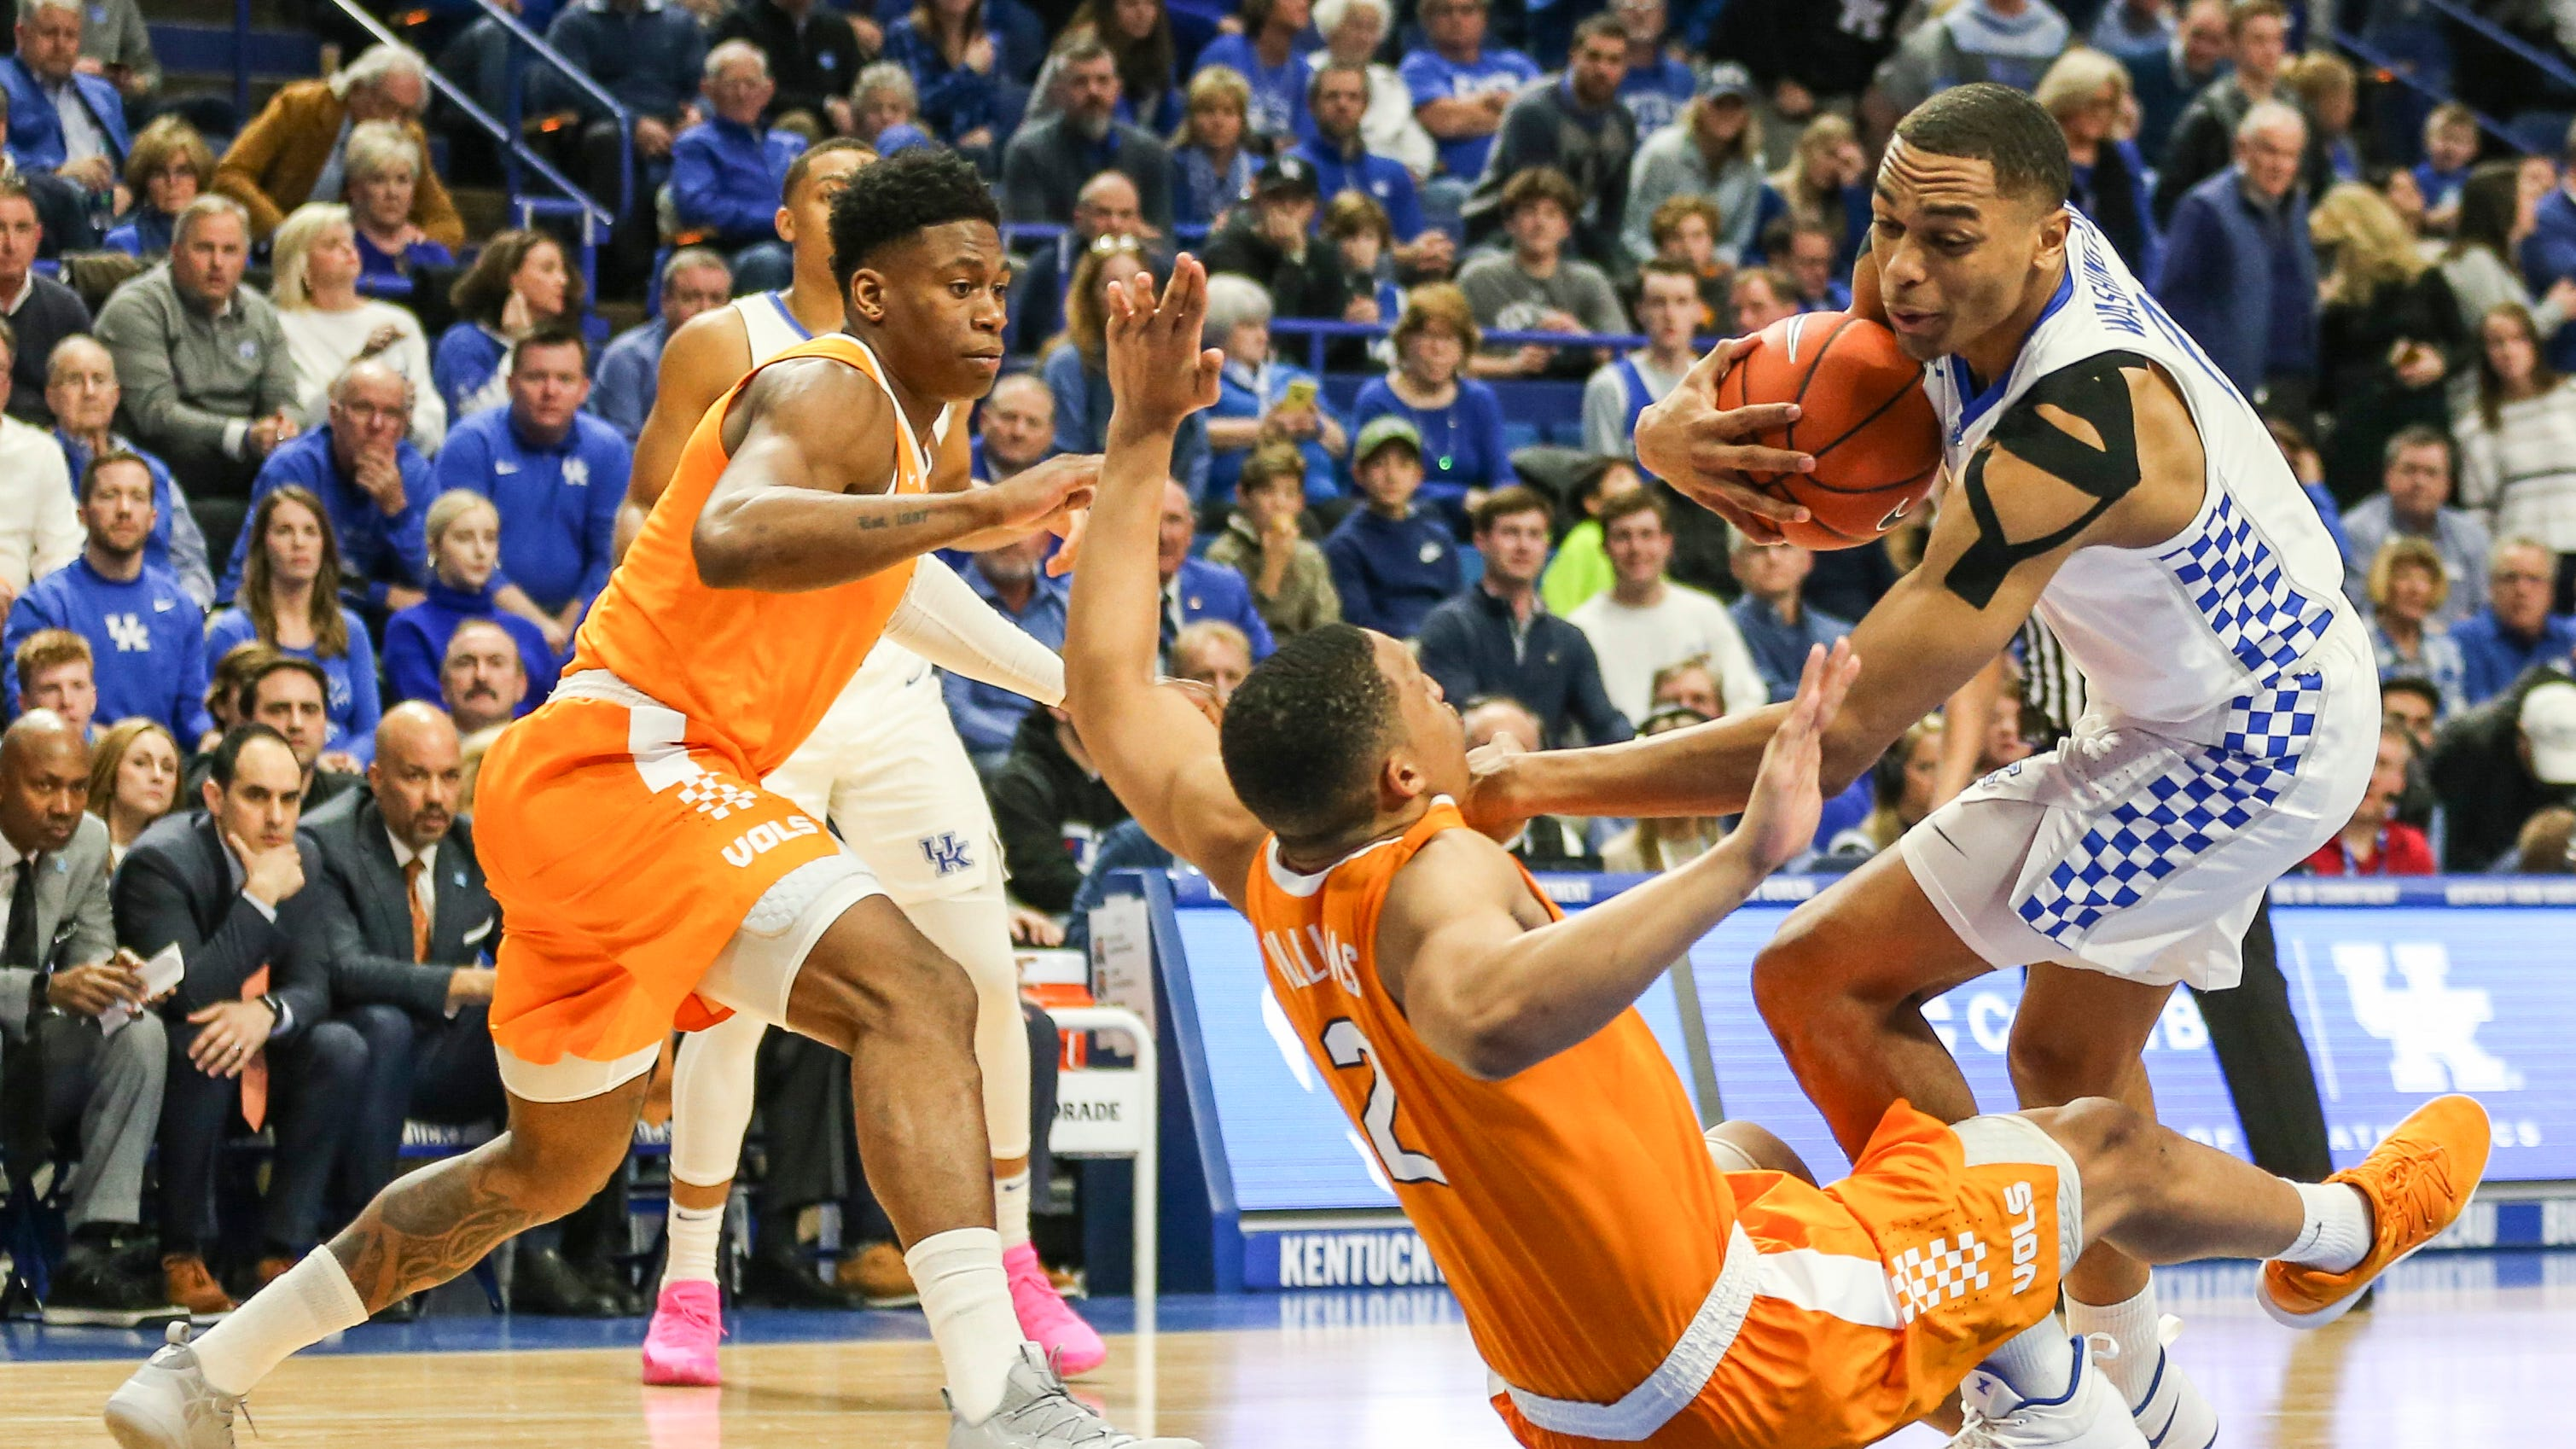 Uk Basketball: Tennessee Vols Vs Kentucky: On Twitter, Fans Remain